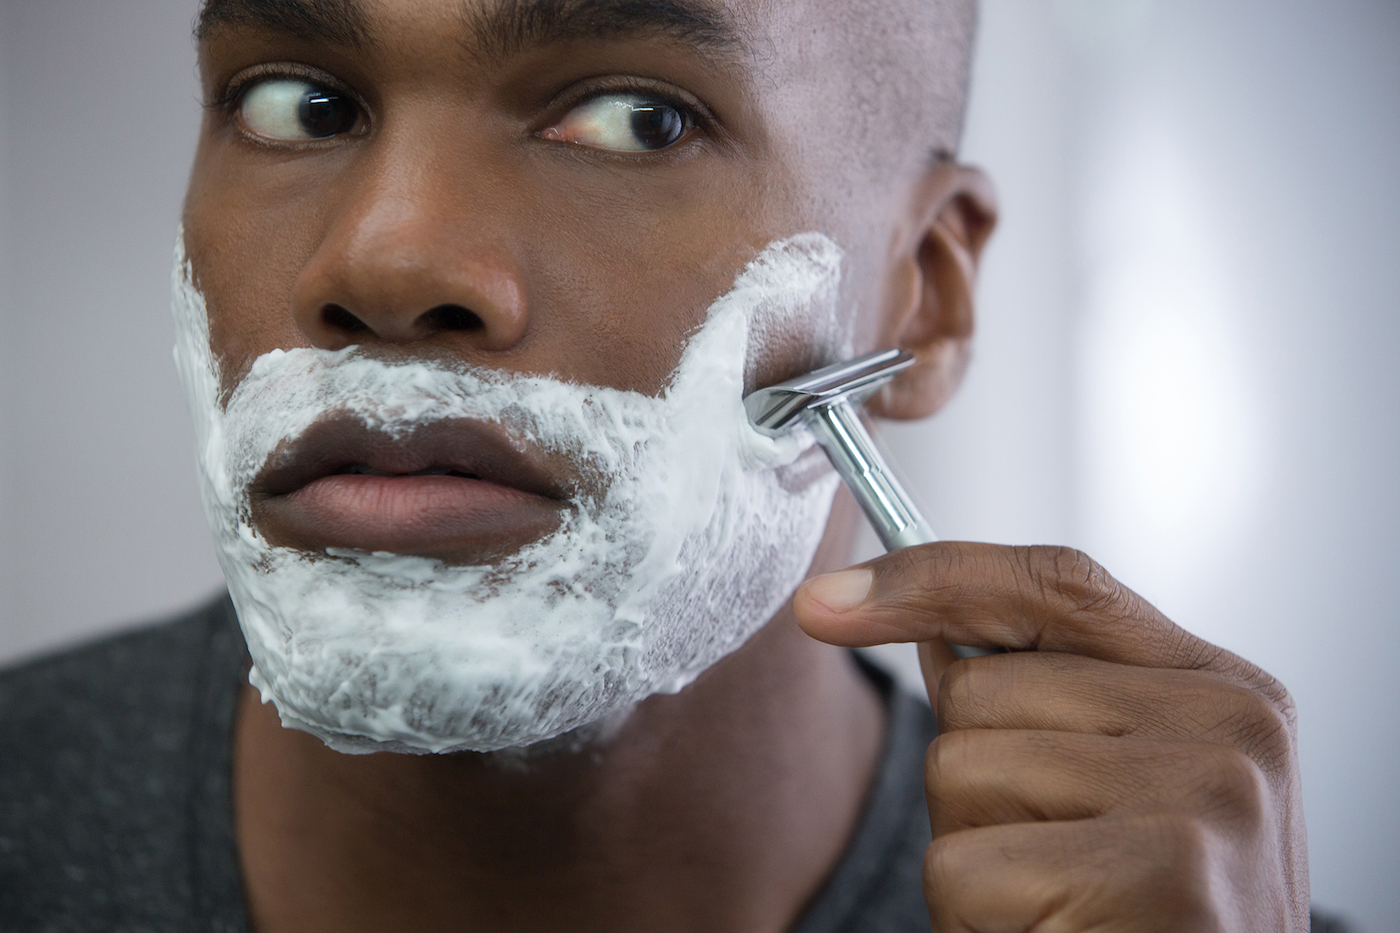 bearded men have cleaner faces than shaved men